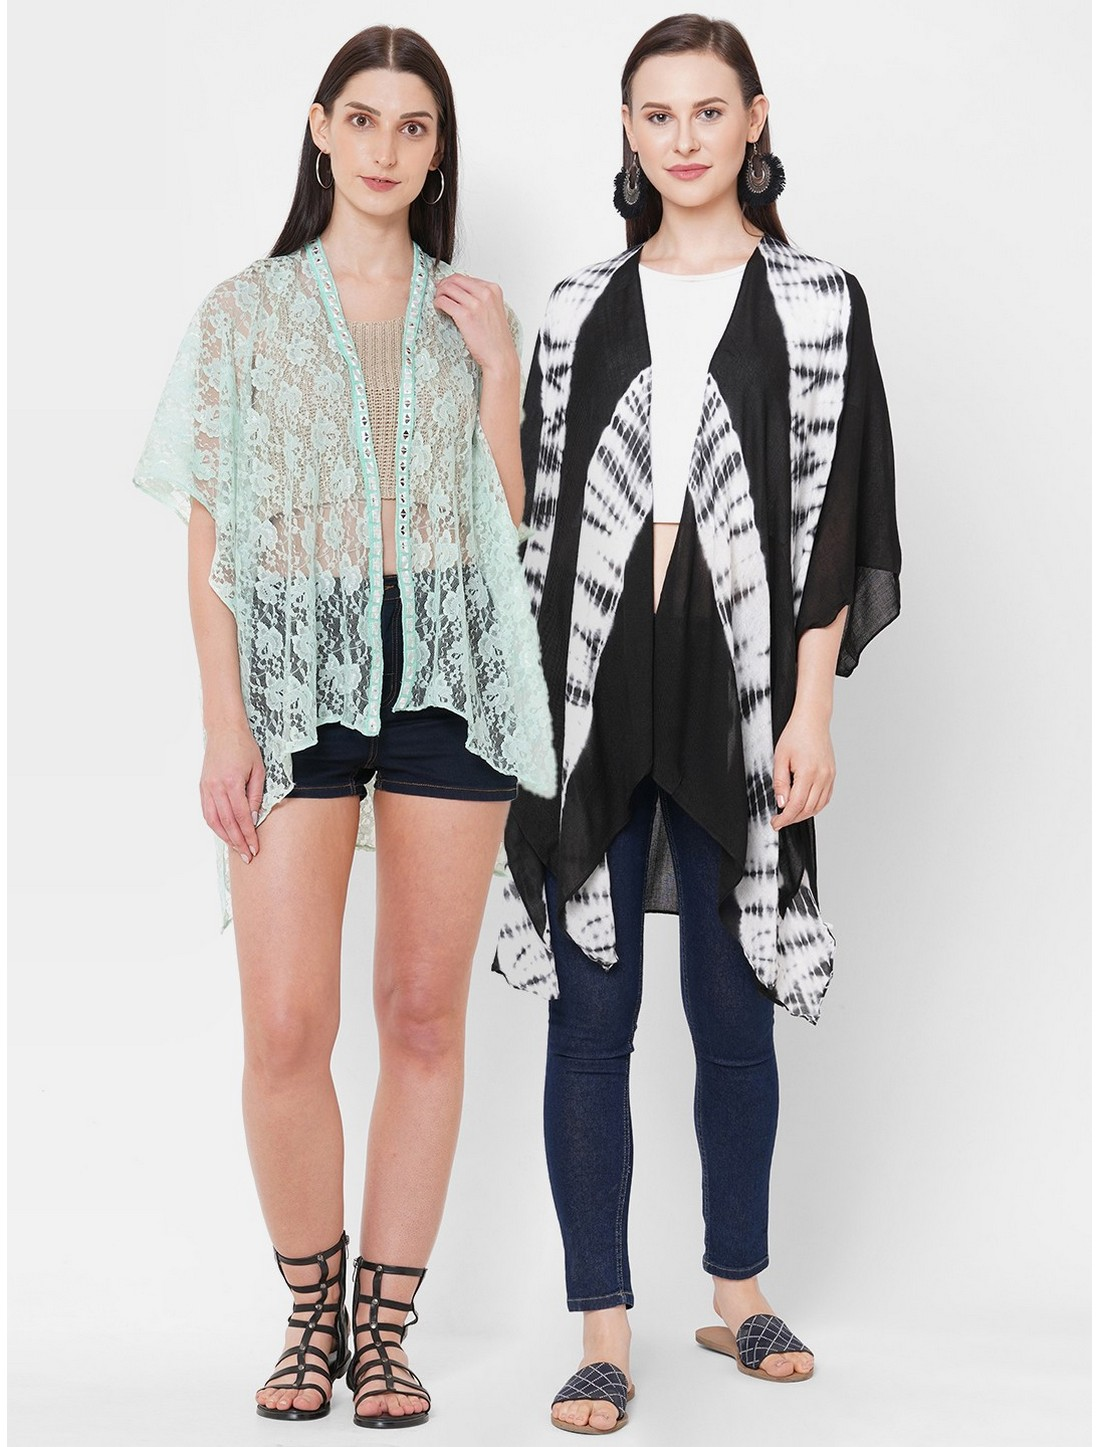 Get Wrapped | Get Wrapped Net Fabric & Viscose Tie-Dye Kimono Combo for Women - Combo Pack of 2